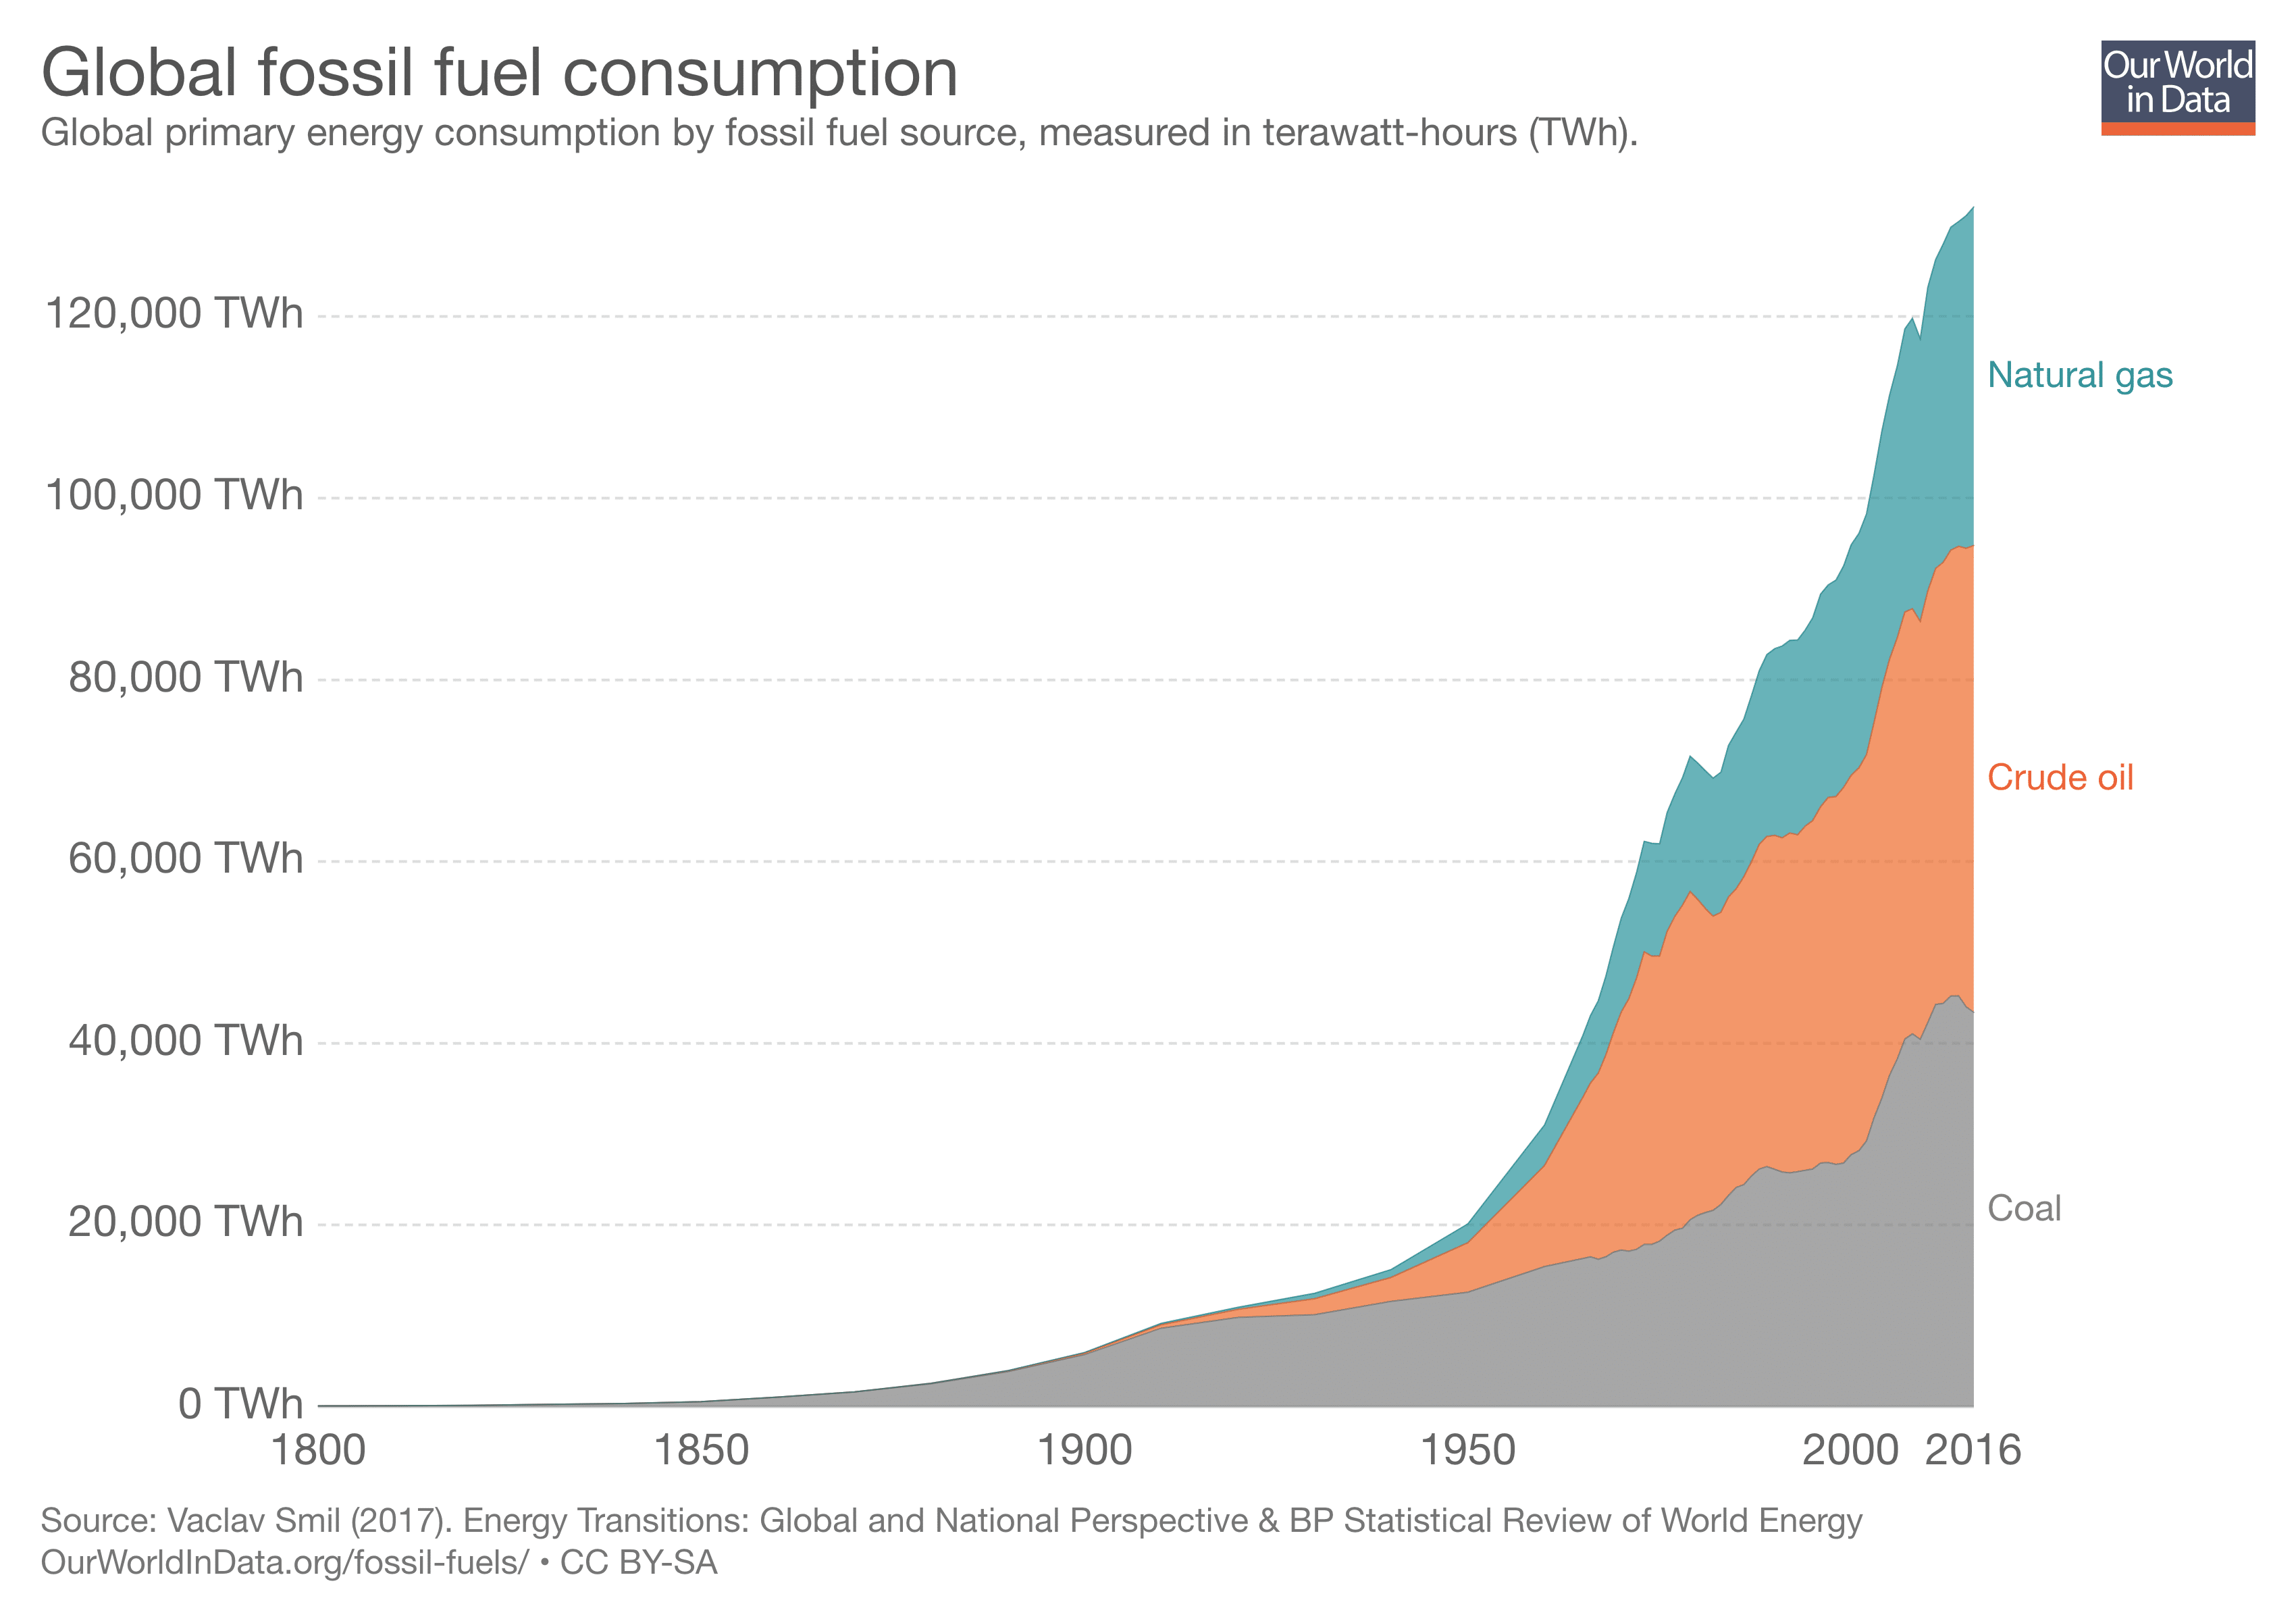 Carbon offsetting fossil fuel consumption